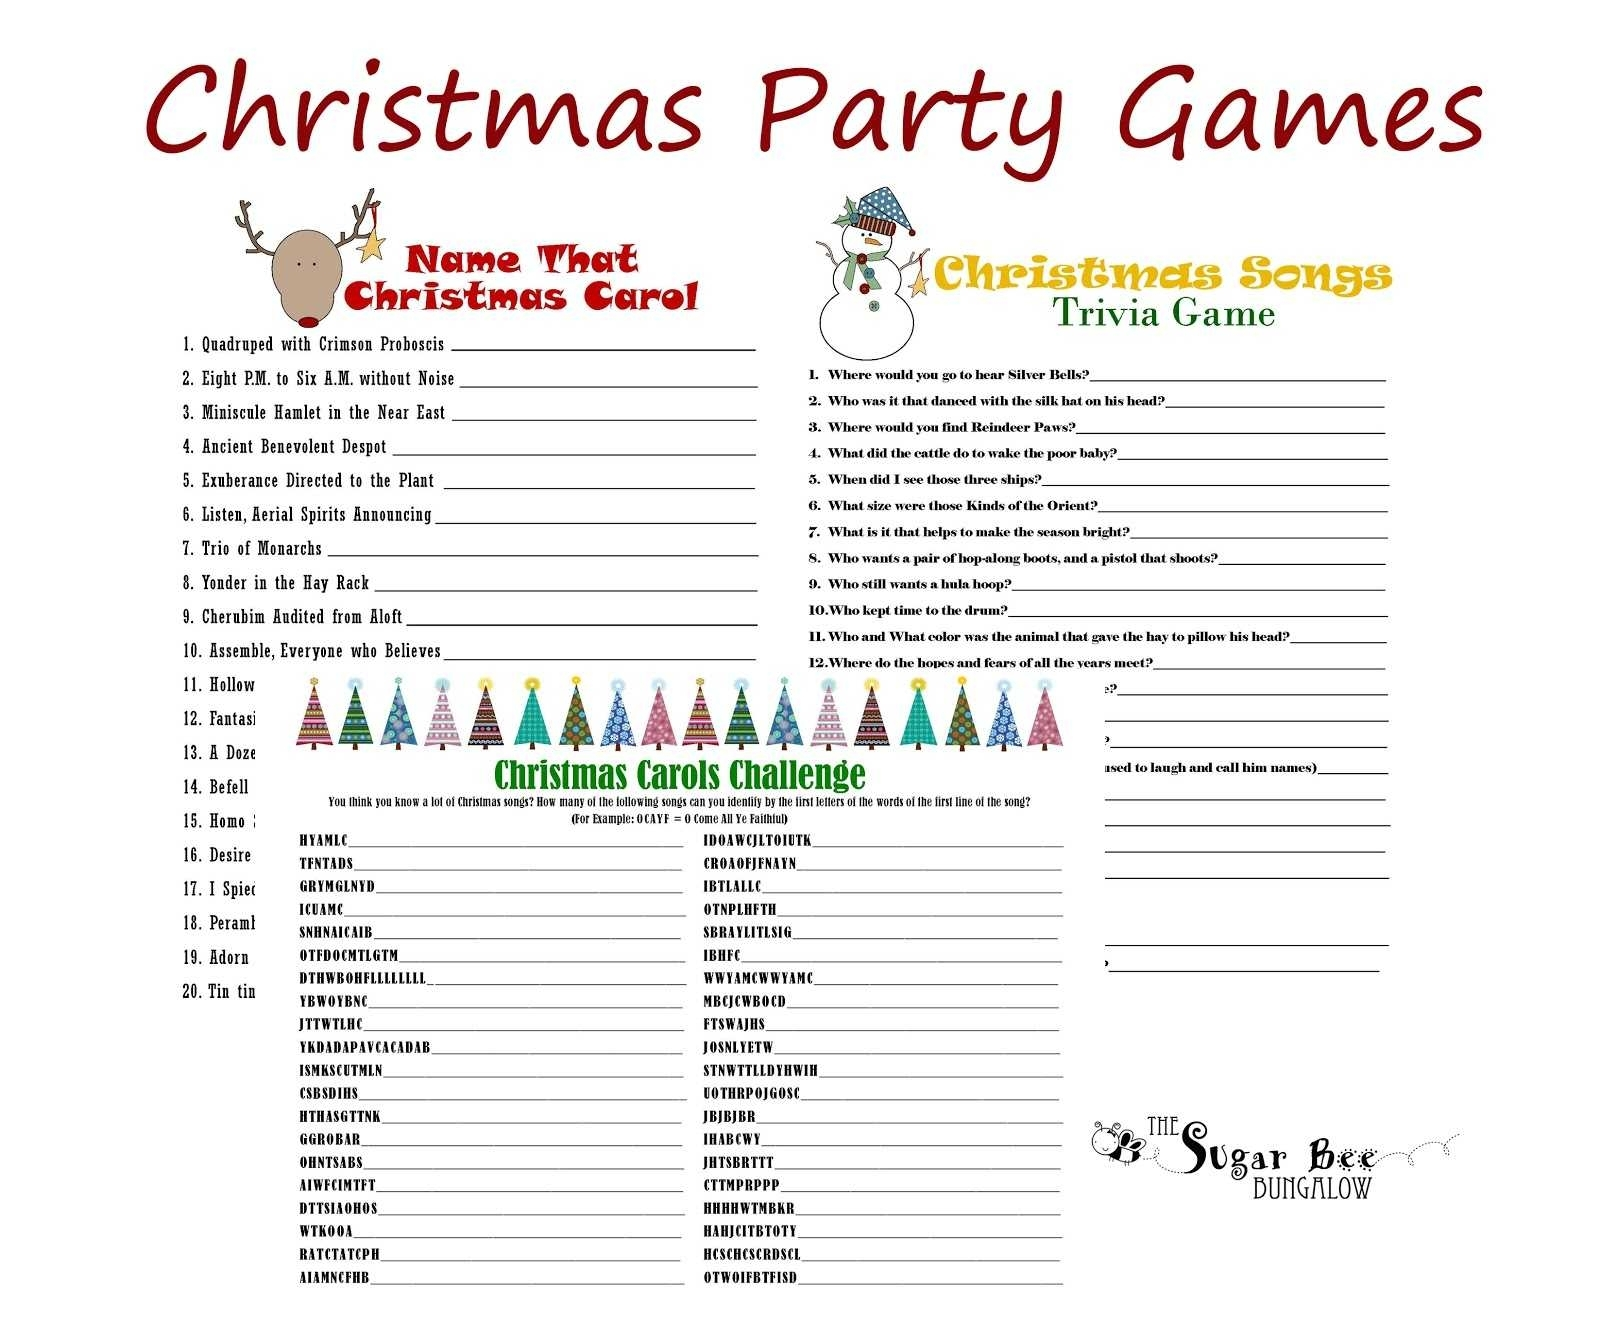 10 Most Recommended Fun Ideas For Company Christmas Parties %name 2021